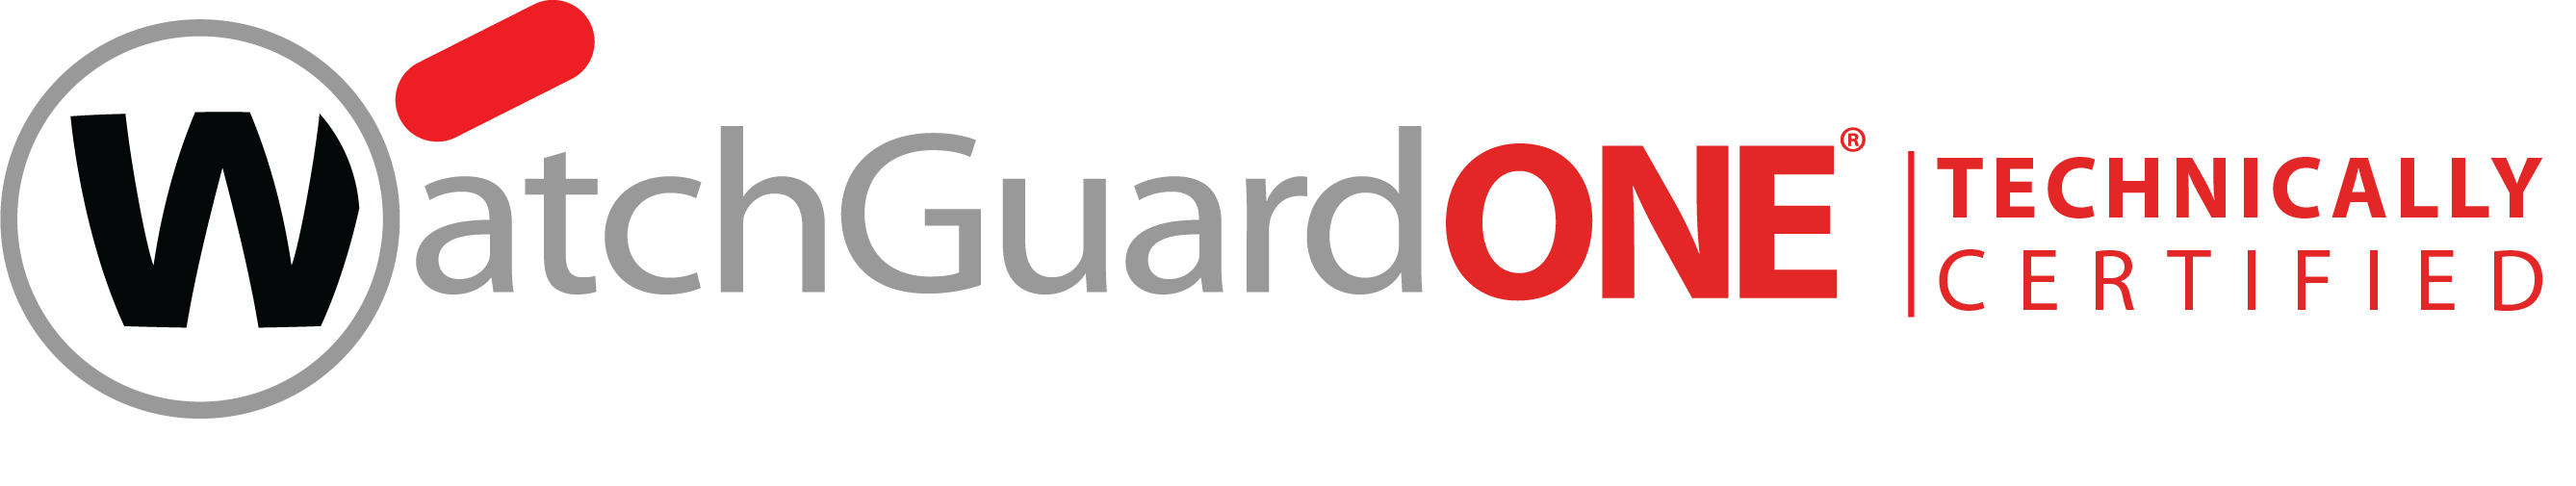 WatchGuard Technically Certified Logo